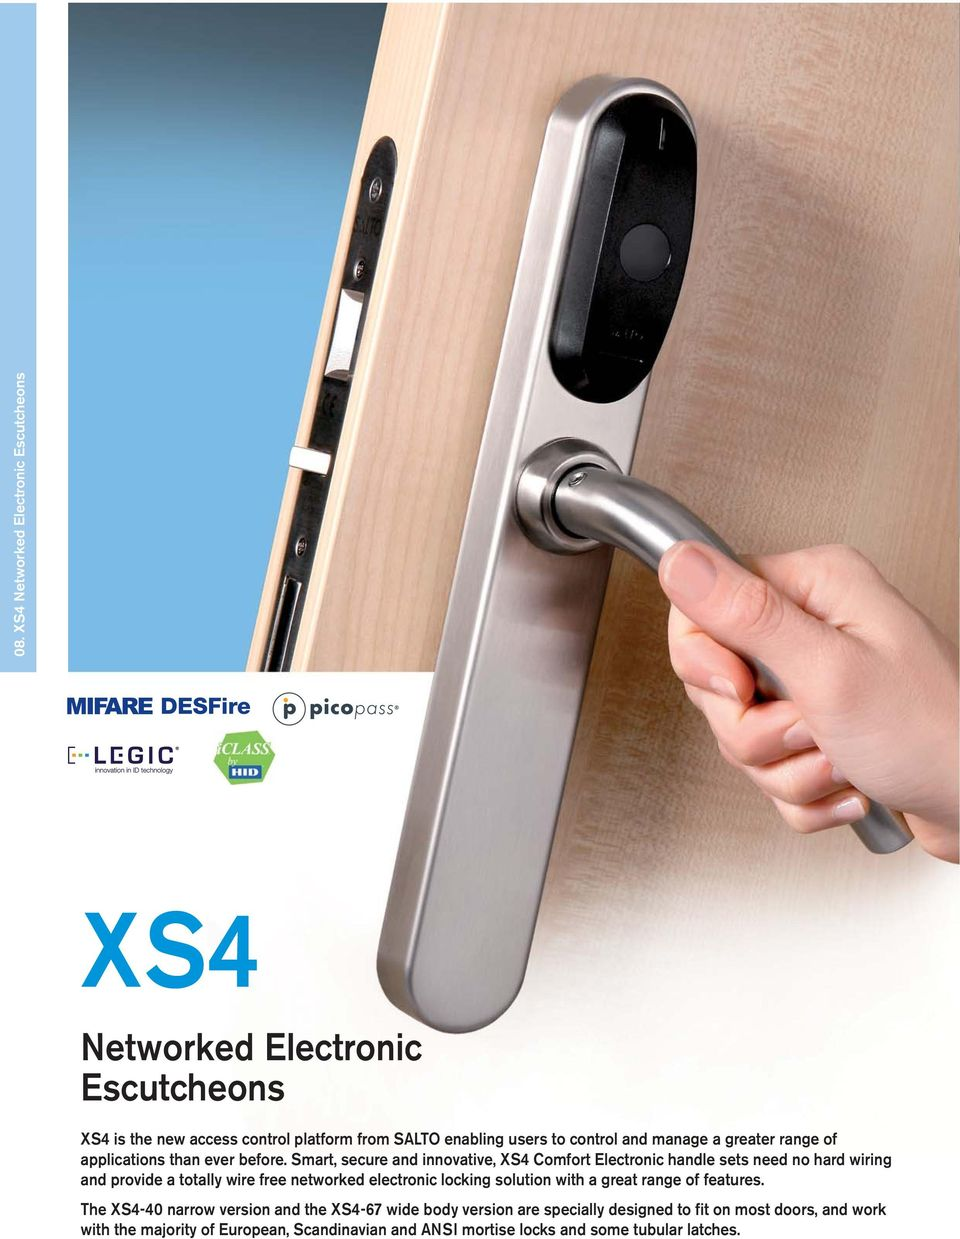 Smart, secure and innovative, XS4 Comfort Electronic handle sets need no hard wiring and provide a totally wire free networked electronic locking